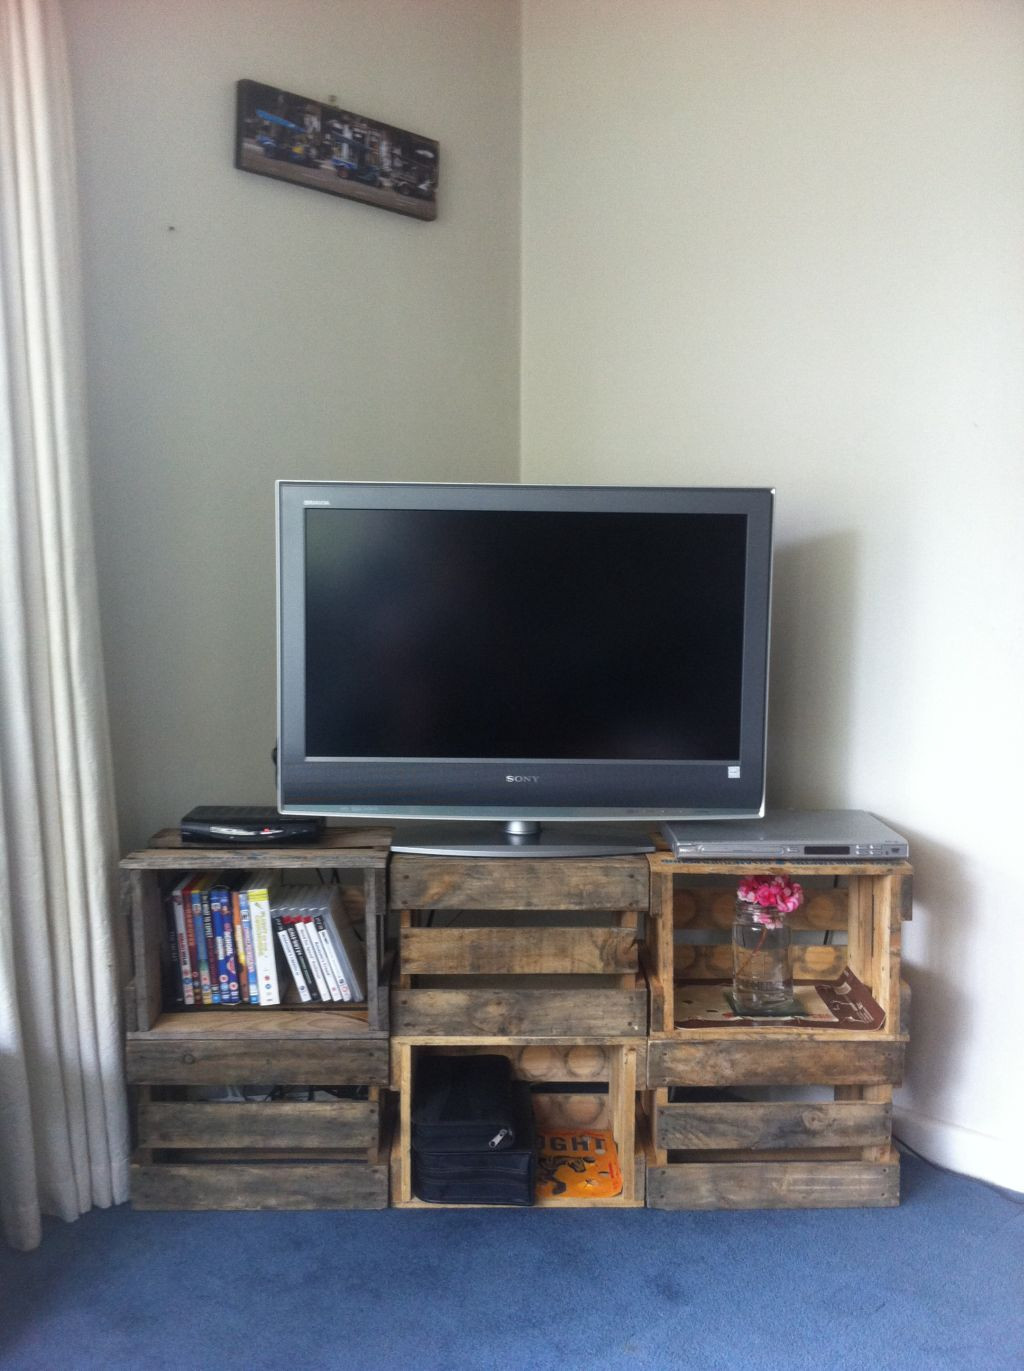 Best ideas about Tv Stand DIY . Save or Pin How to Choose a TV Stand Now.